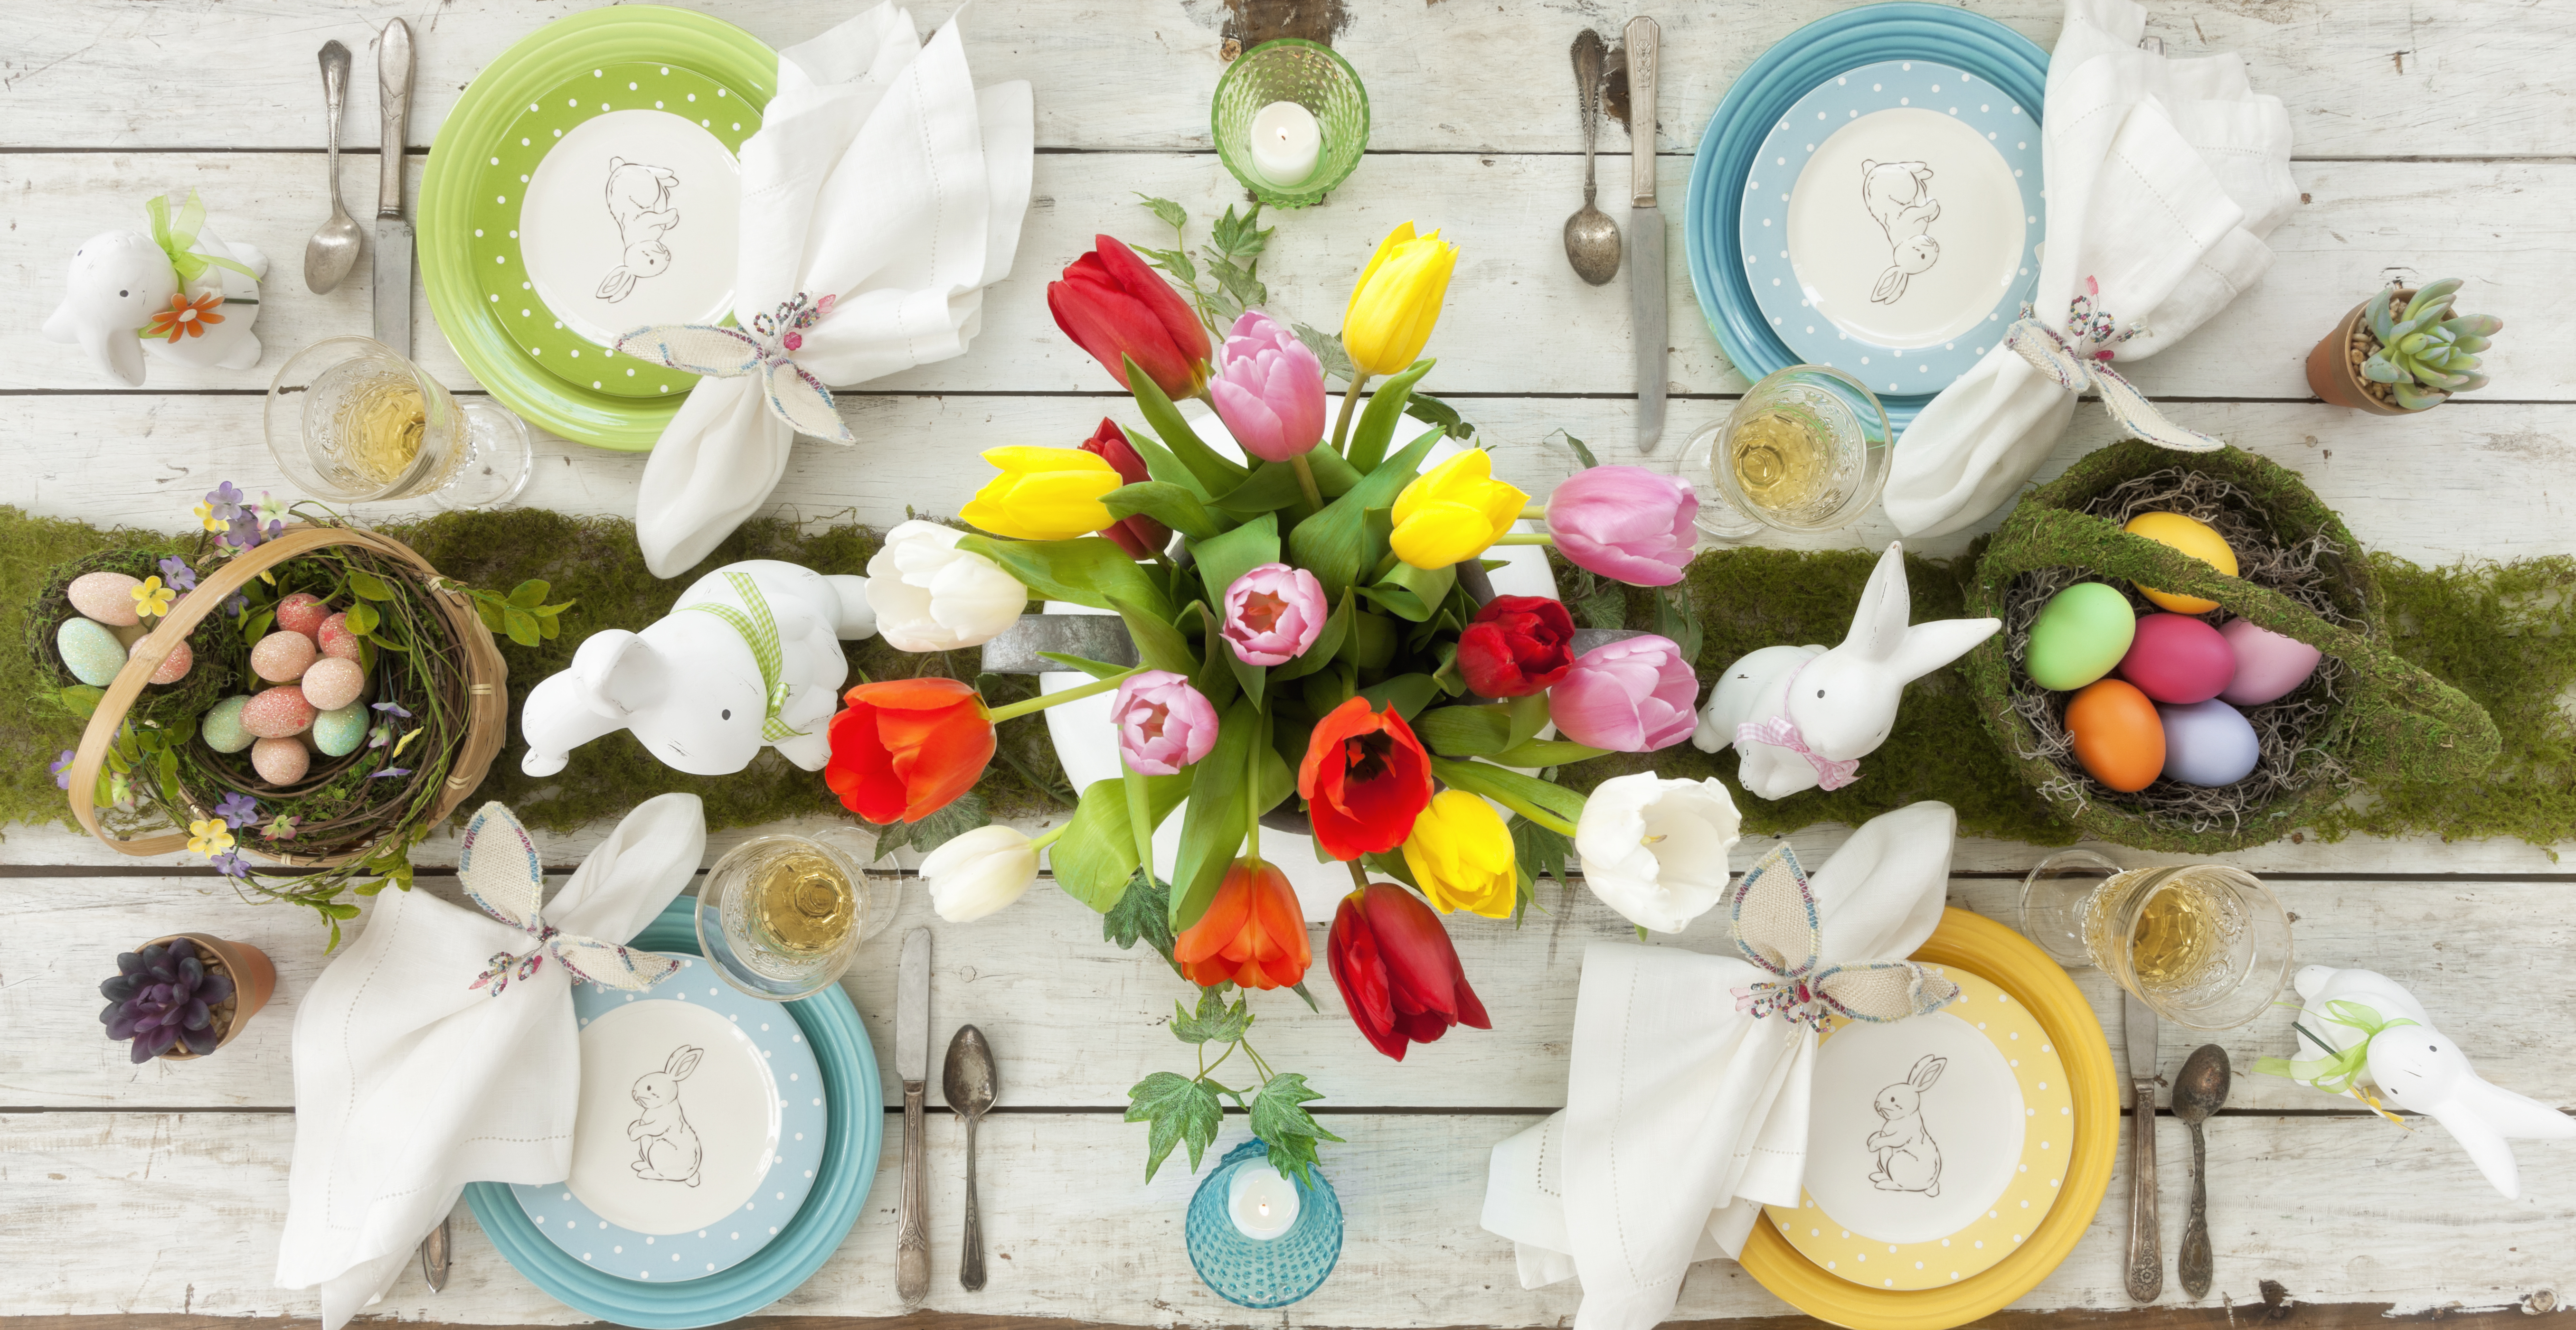 colorful easter table setting with bunny rabbit plates